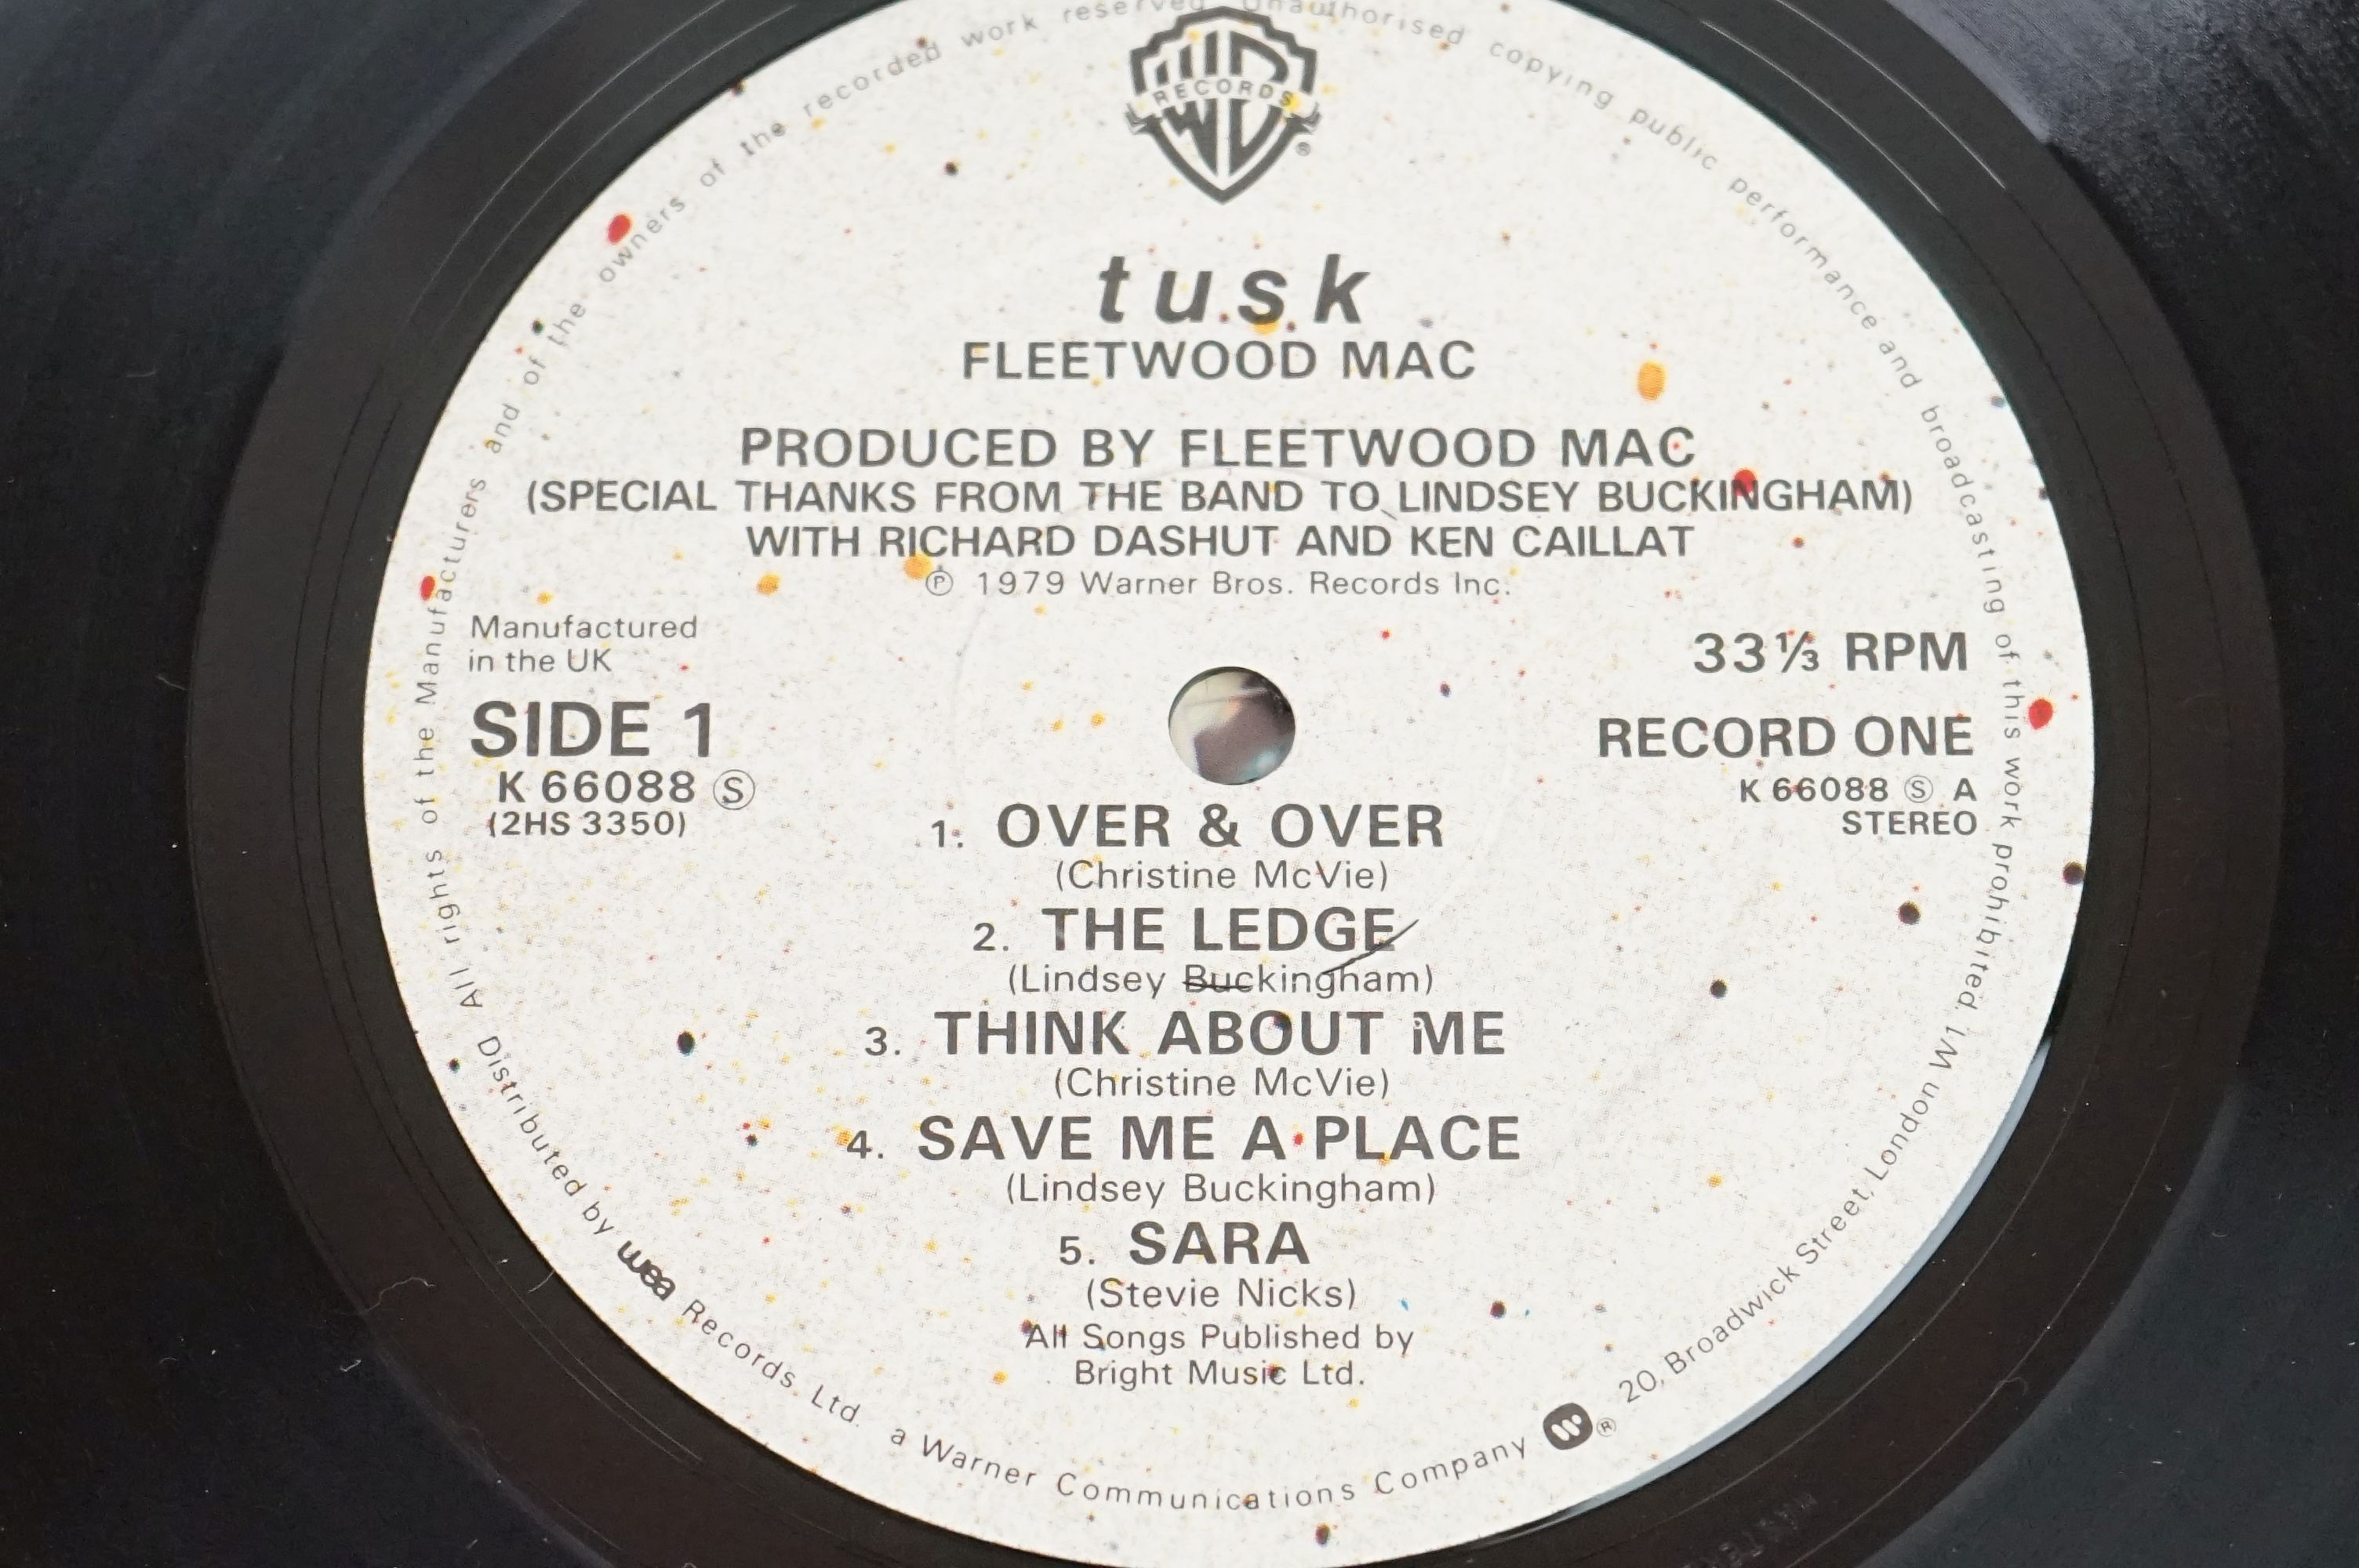 Vinyl - Two Fleetwood Mac LPs to include Tusk (K66088) and Rumours (K56344), sleeves and vinyl vg+ - Image 6 of 7